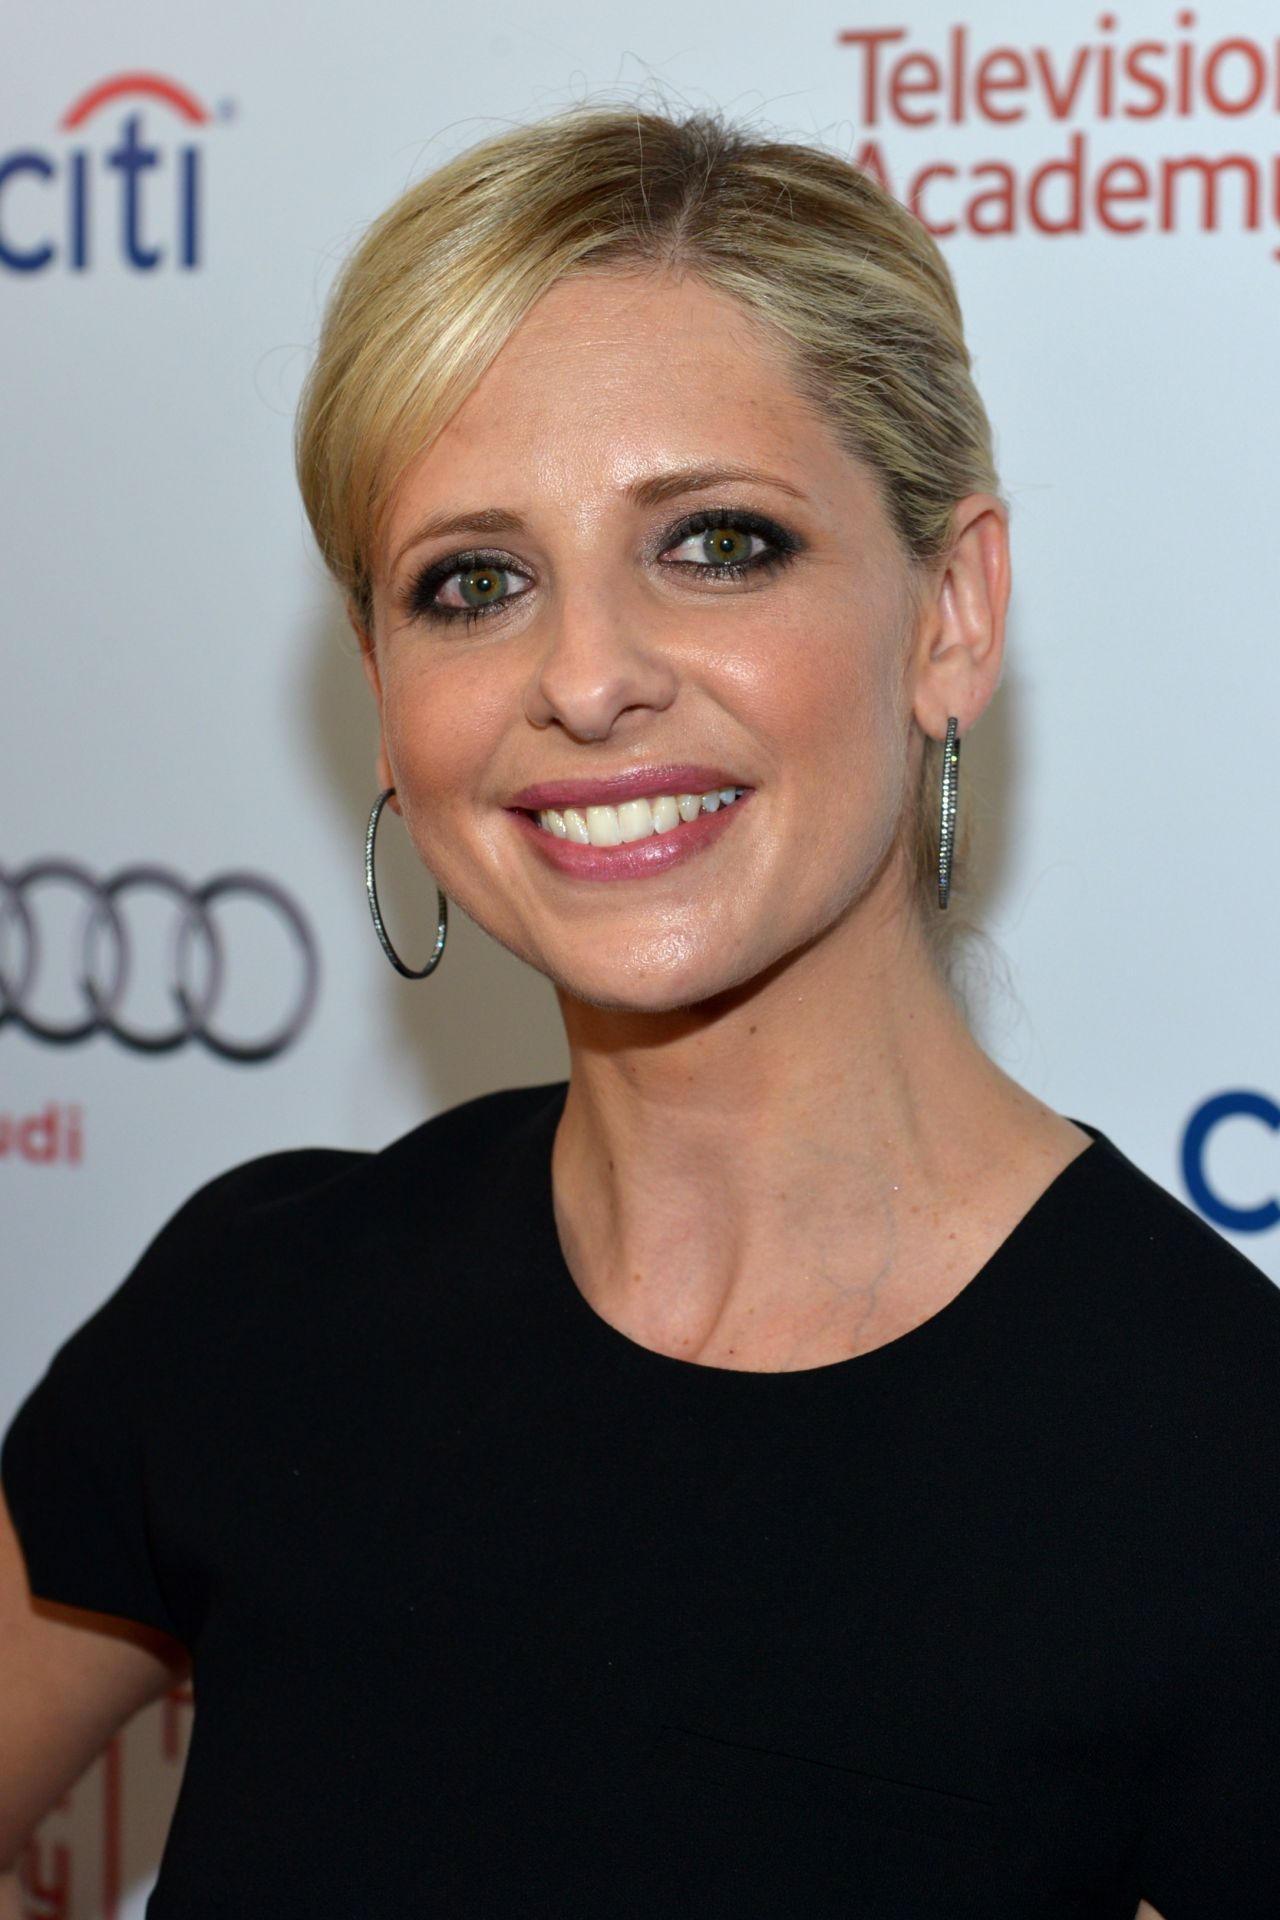 sarah-michelle-gellar-television-academy-hall-of-fame-march-2014_2